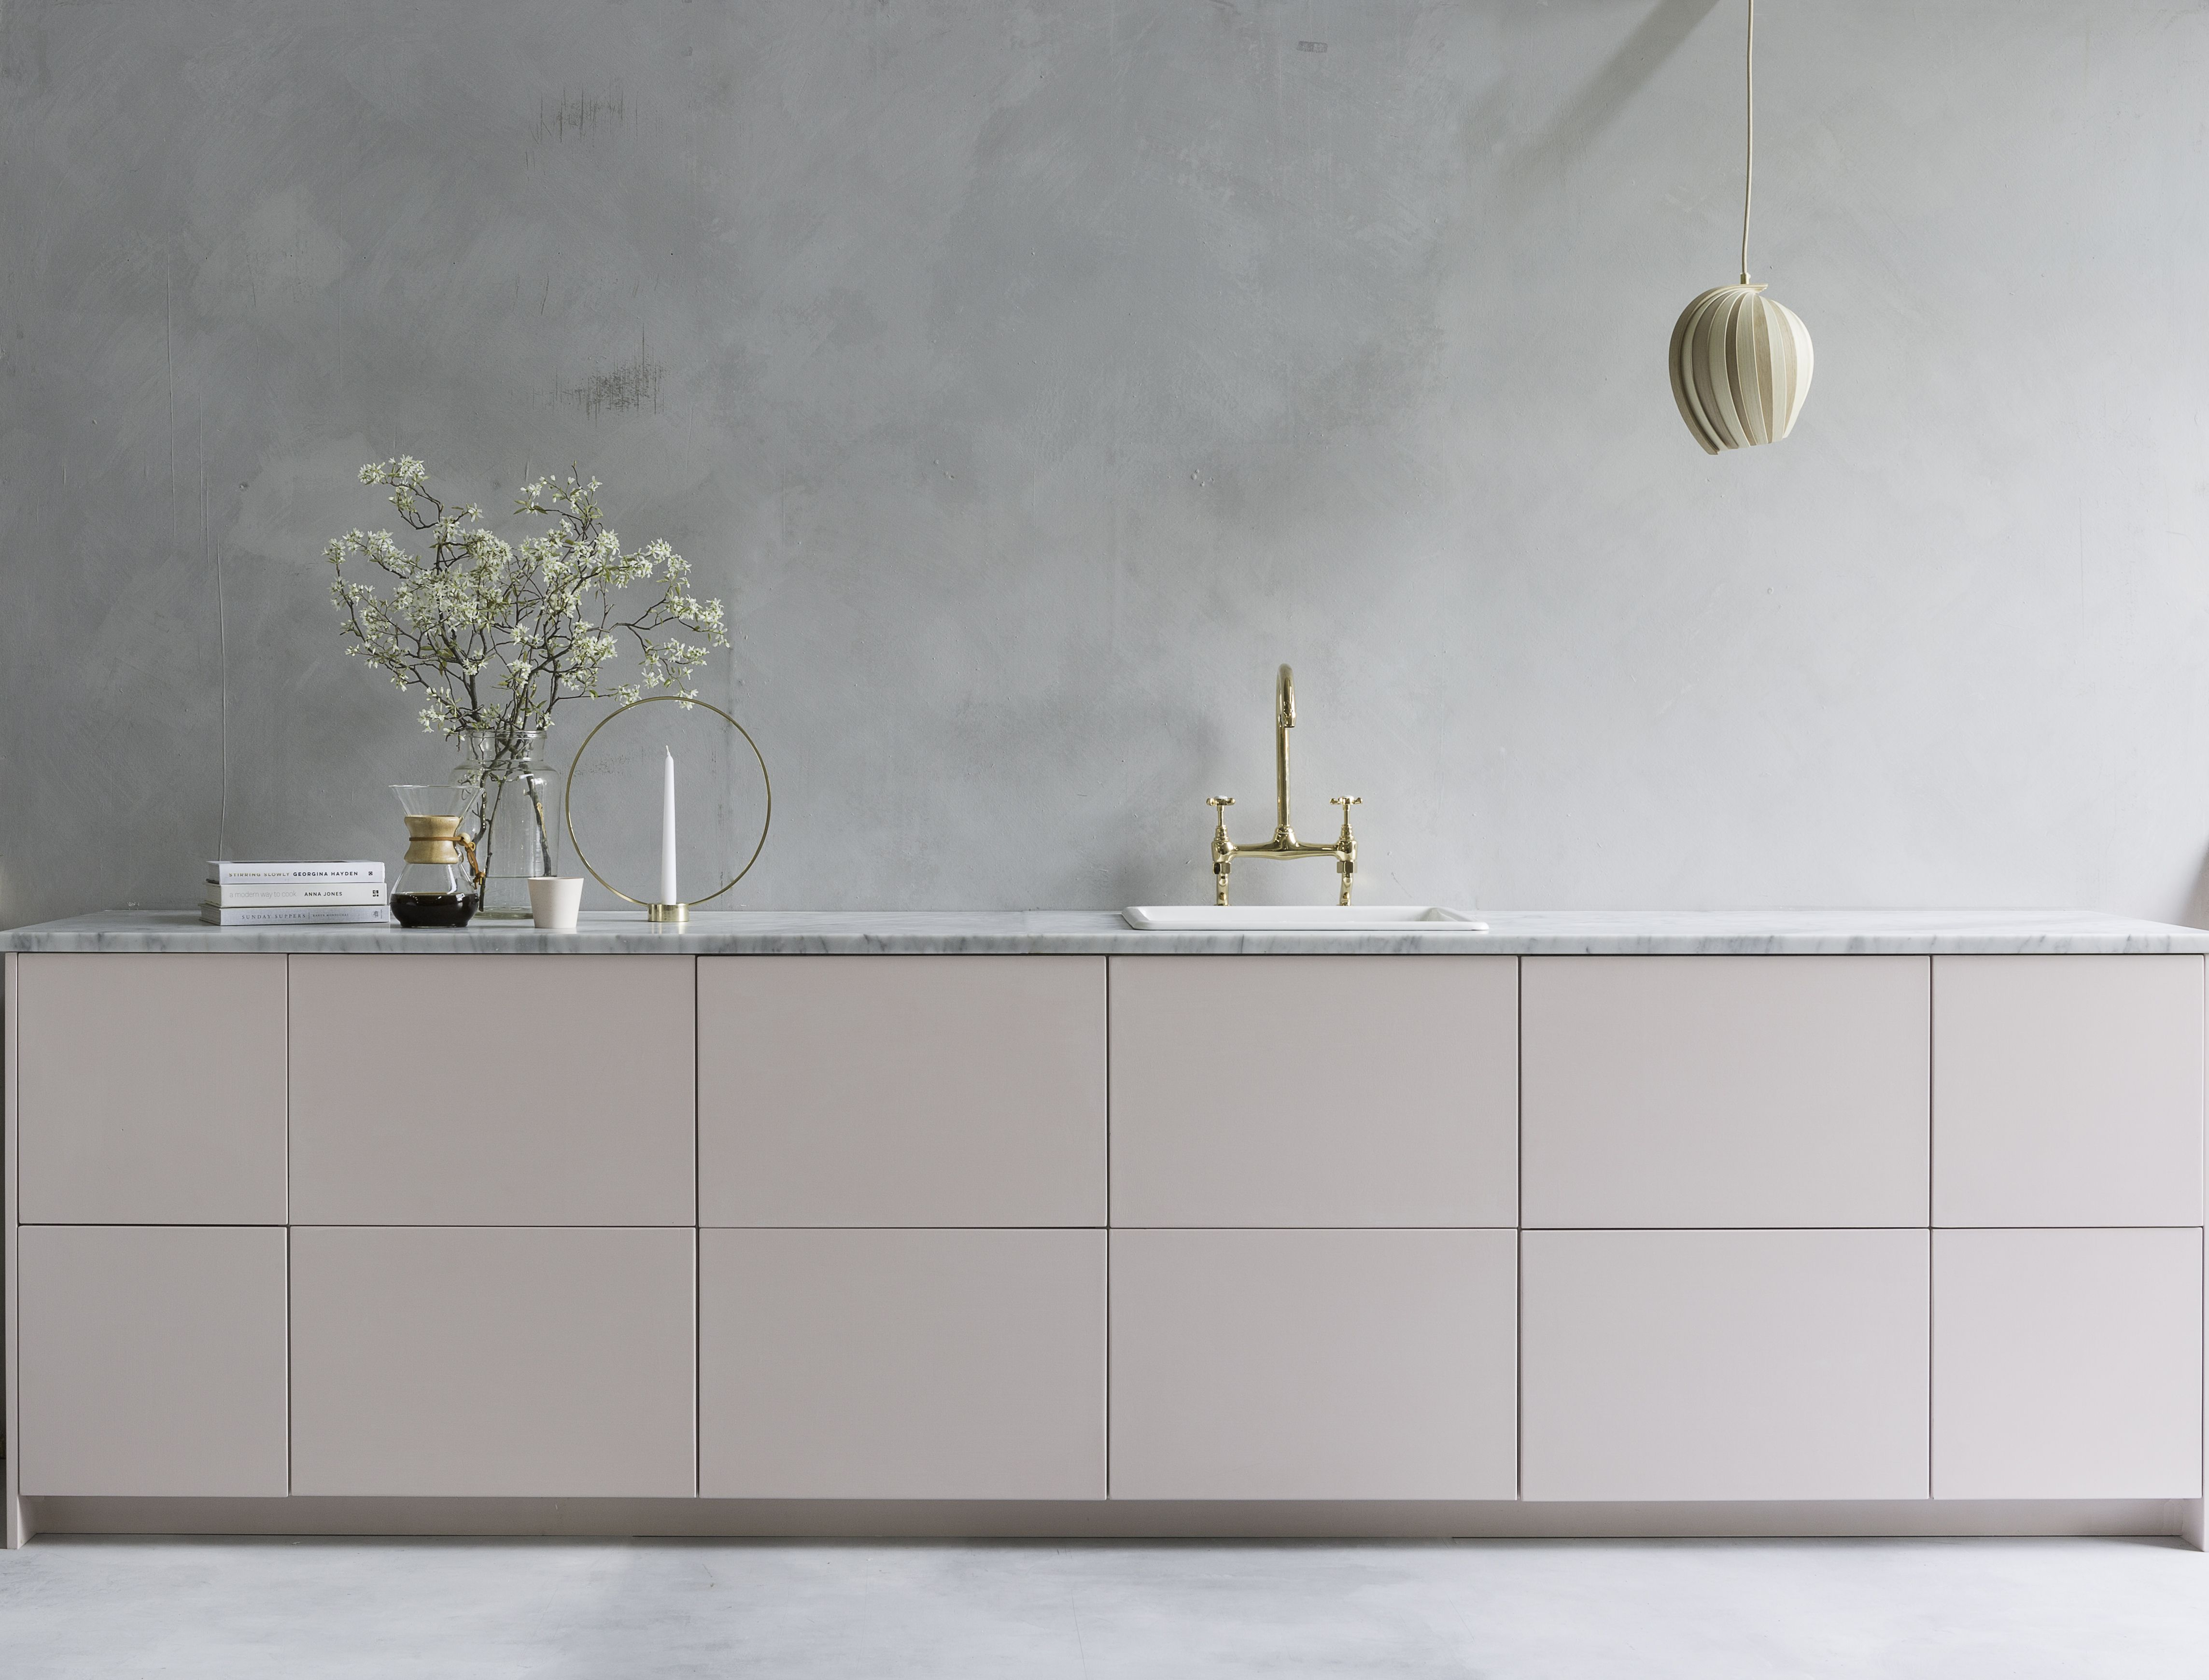 Ikea Küche Push To Open Pink Kitchen Fronts For Cabinets Including Ikea Kitchen Painted